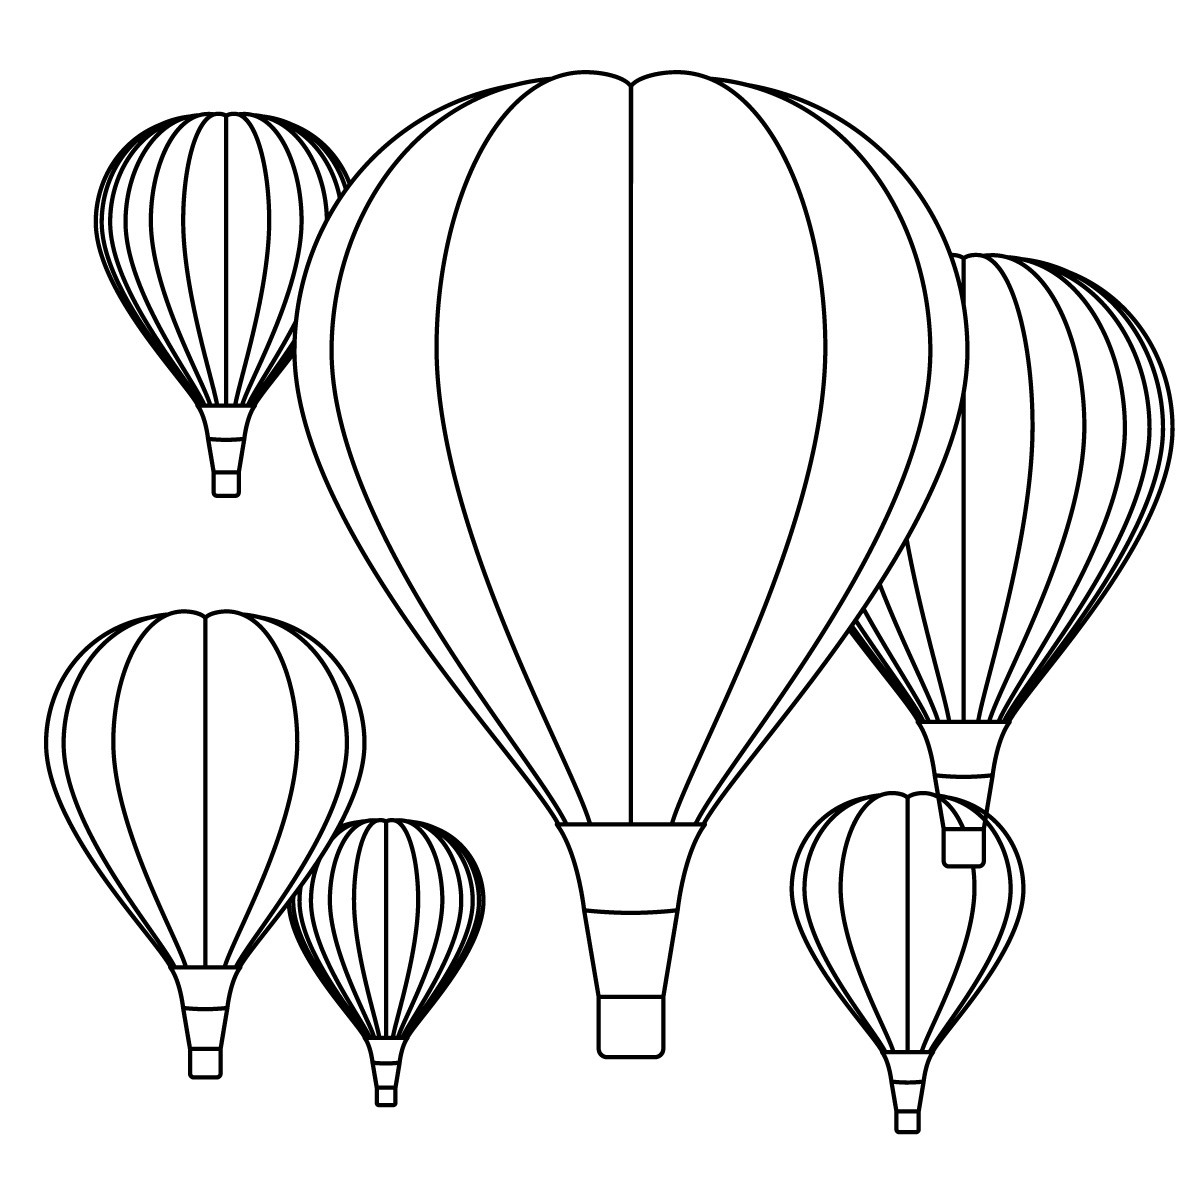 coloring balloon drawing for kids free printable hot air balloon coloring pages for kids balloon drawing kids coloring for